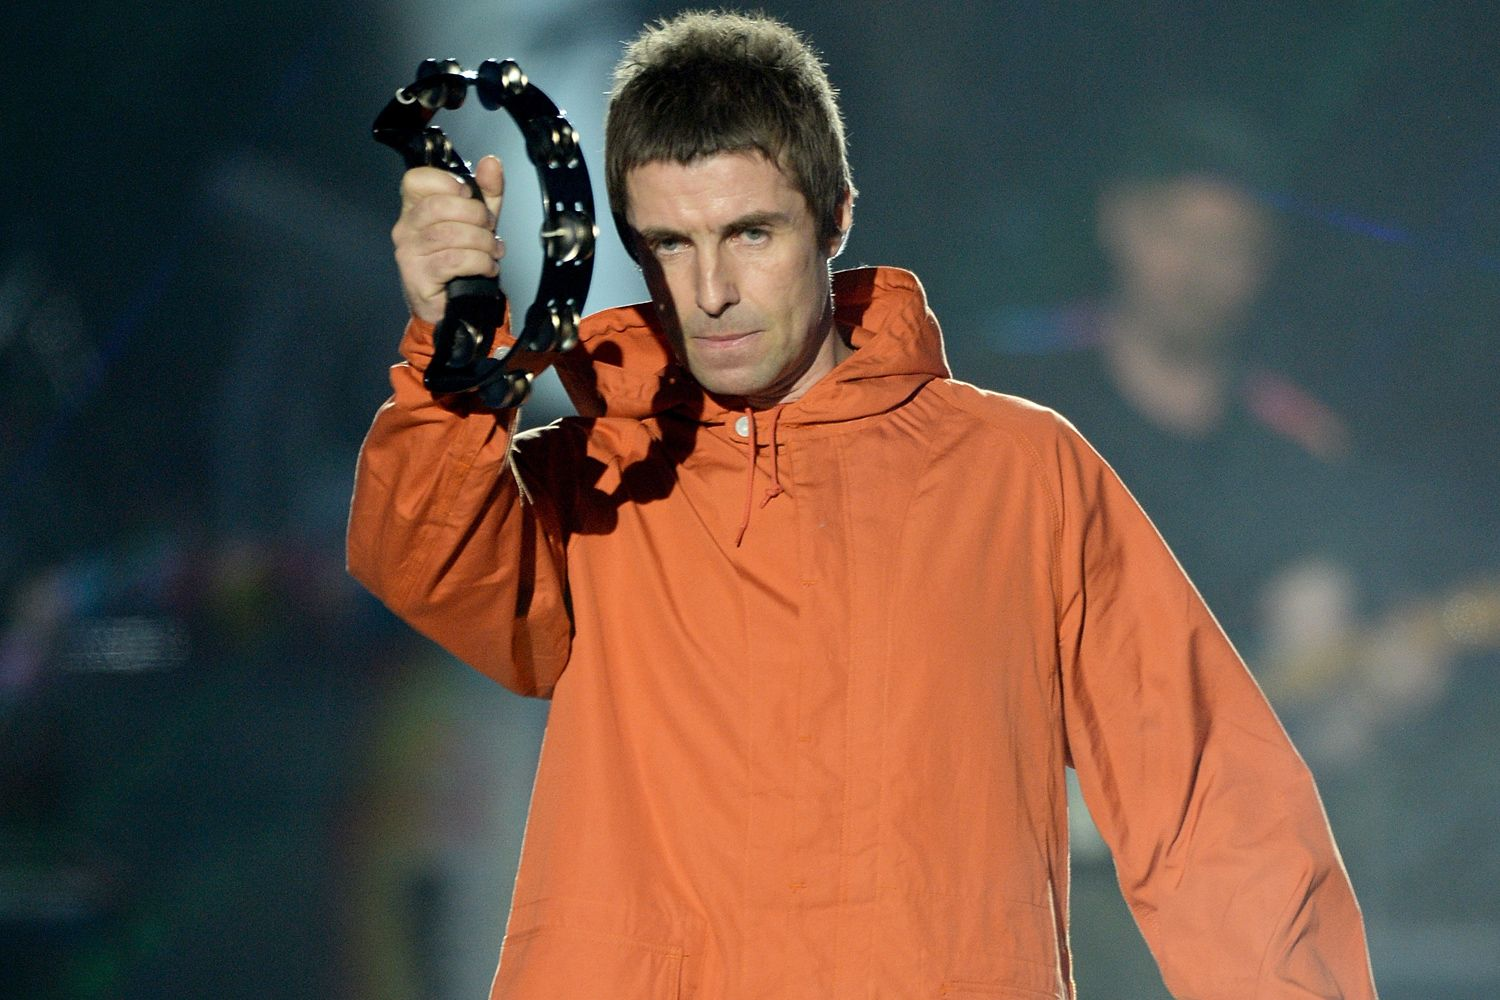 Liam Gallagher reveals he'll quit music and never tour again if his solo album flops: #liamgallagher